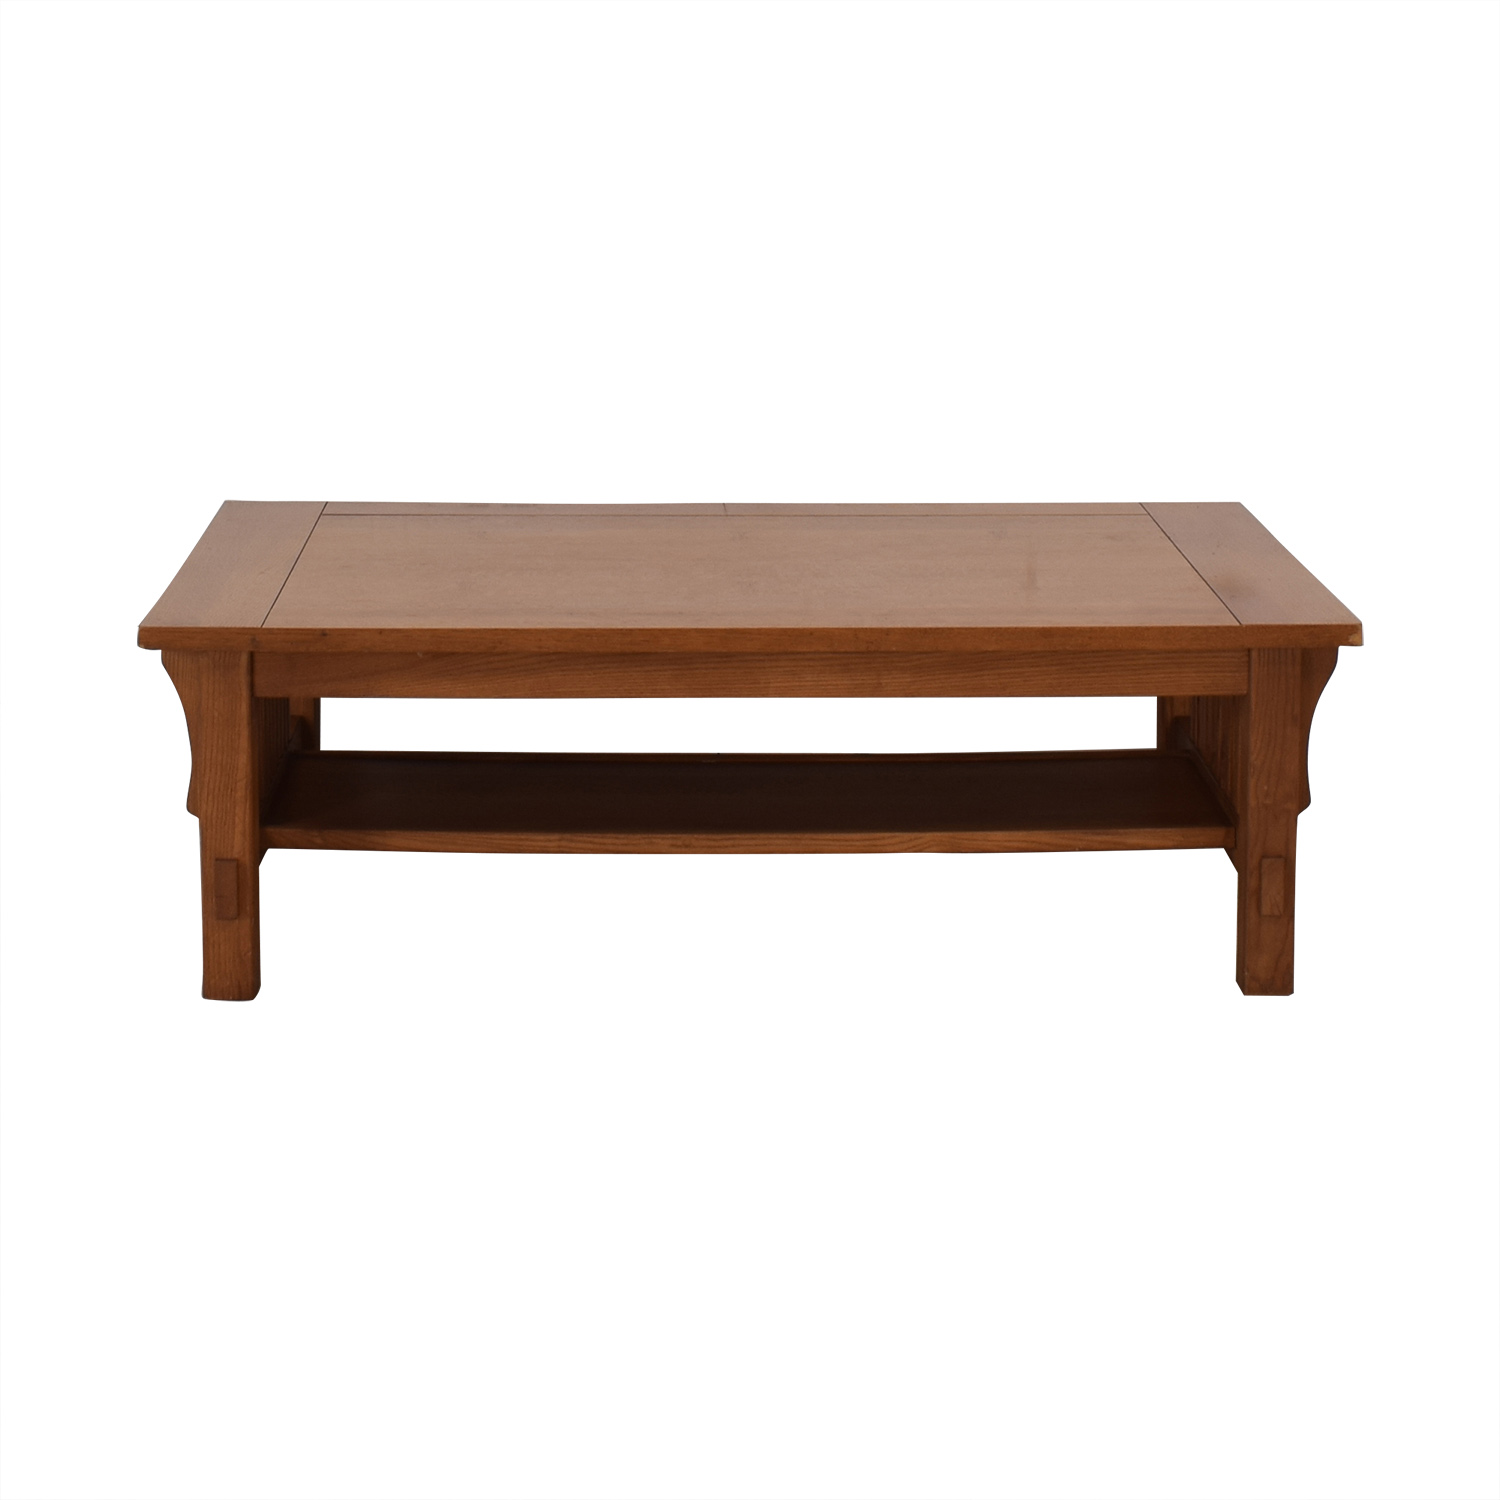 Scott Jordon Scott Jordon Mission Style Wood Coffee Table brown